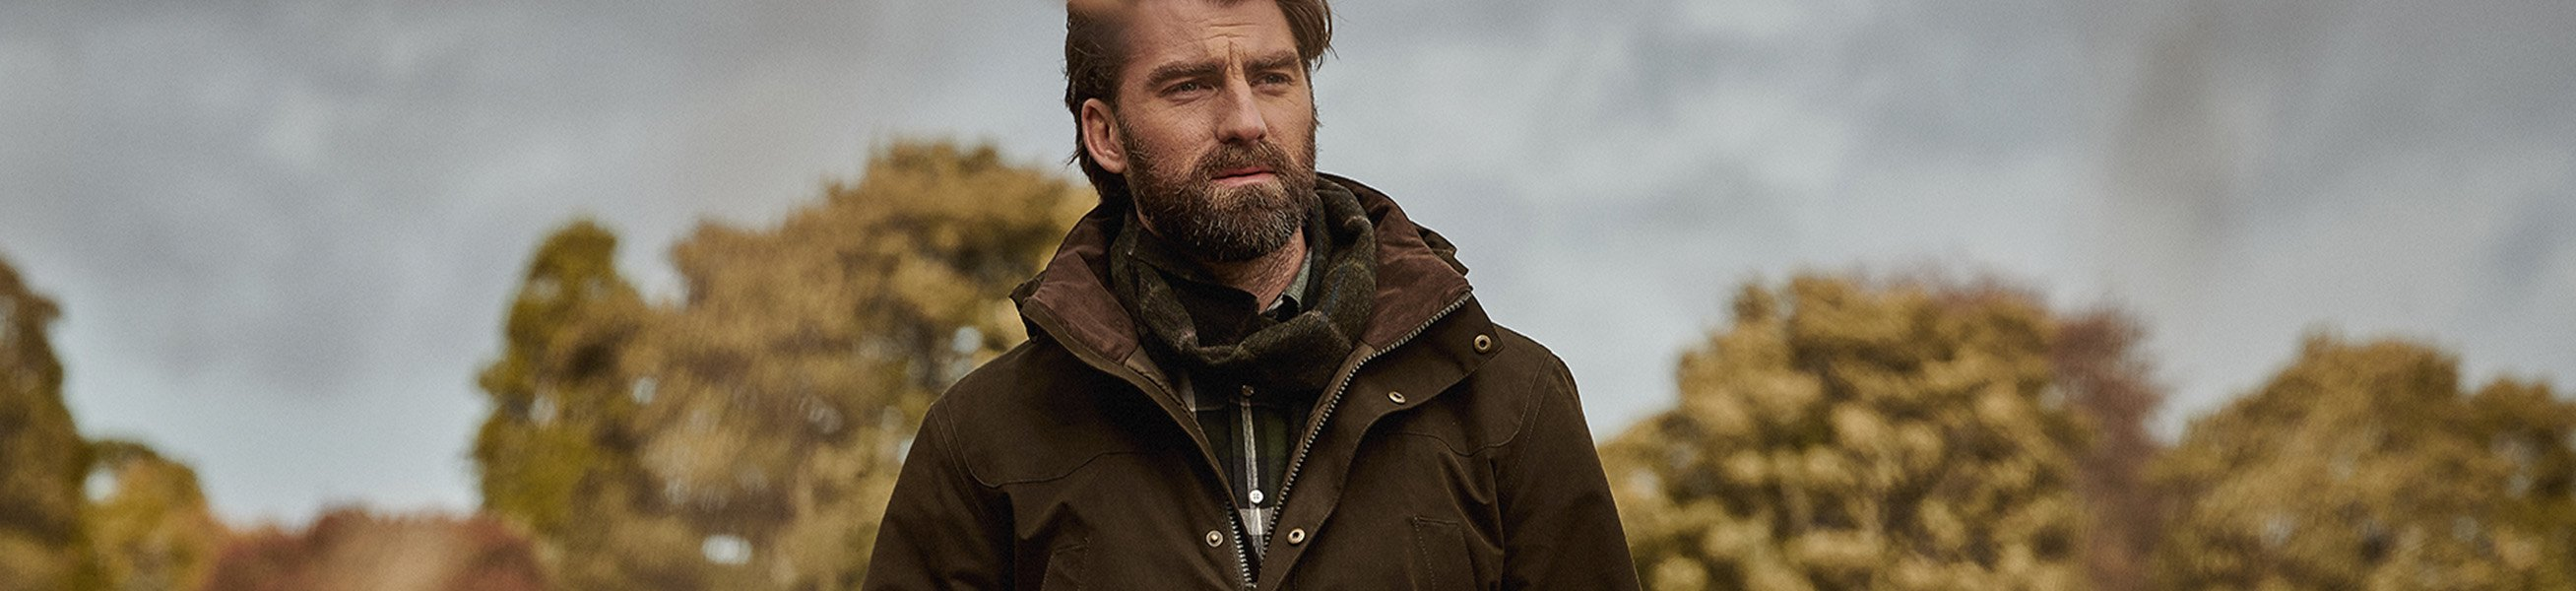 Barbour jassen 2020